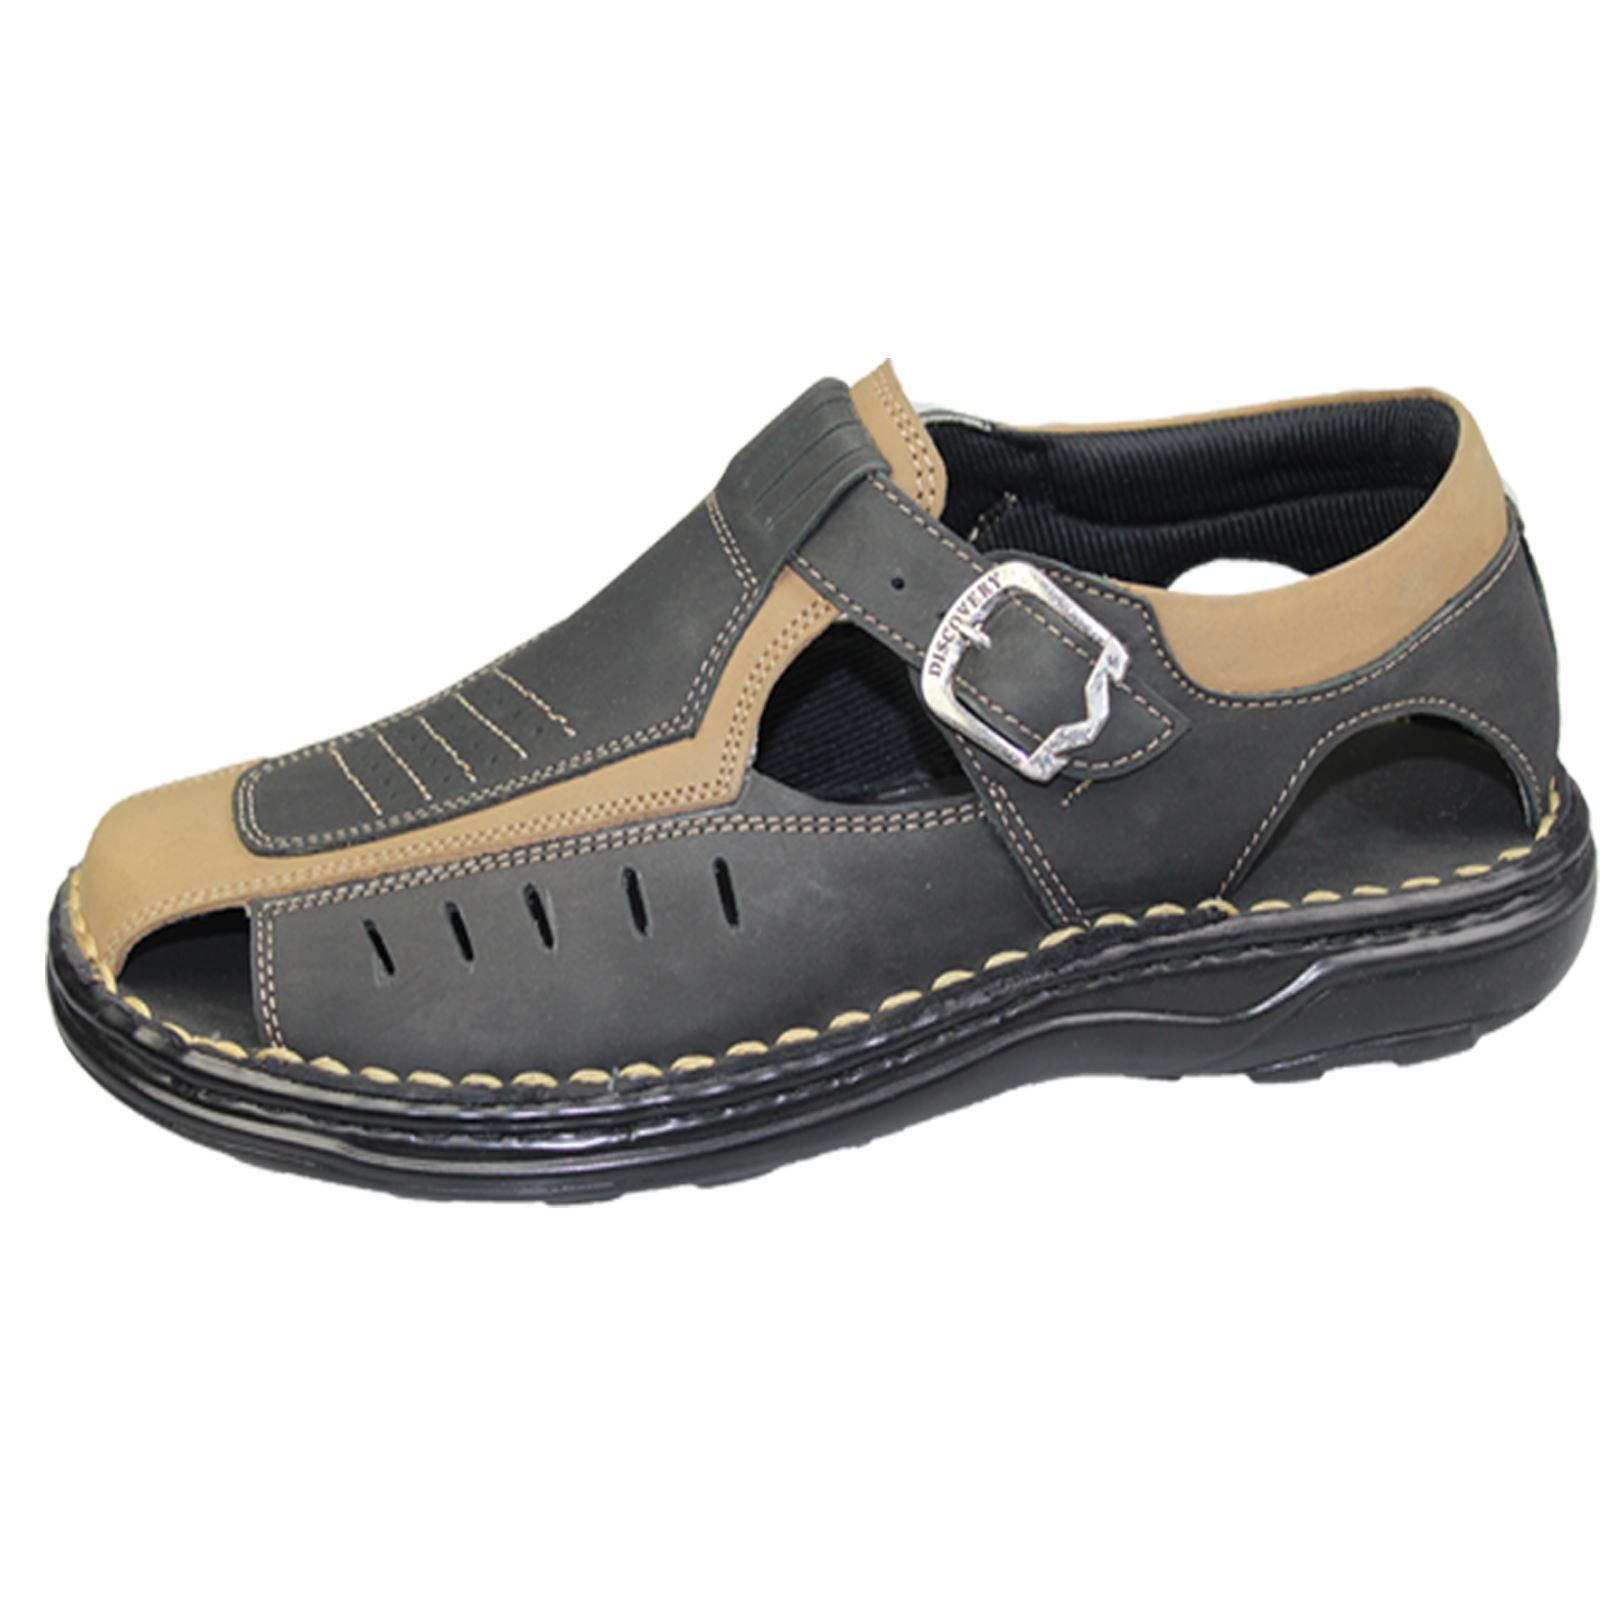 Mens Buckle Sandals Walking Fashion Casual Summer Beach ...